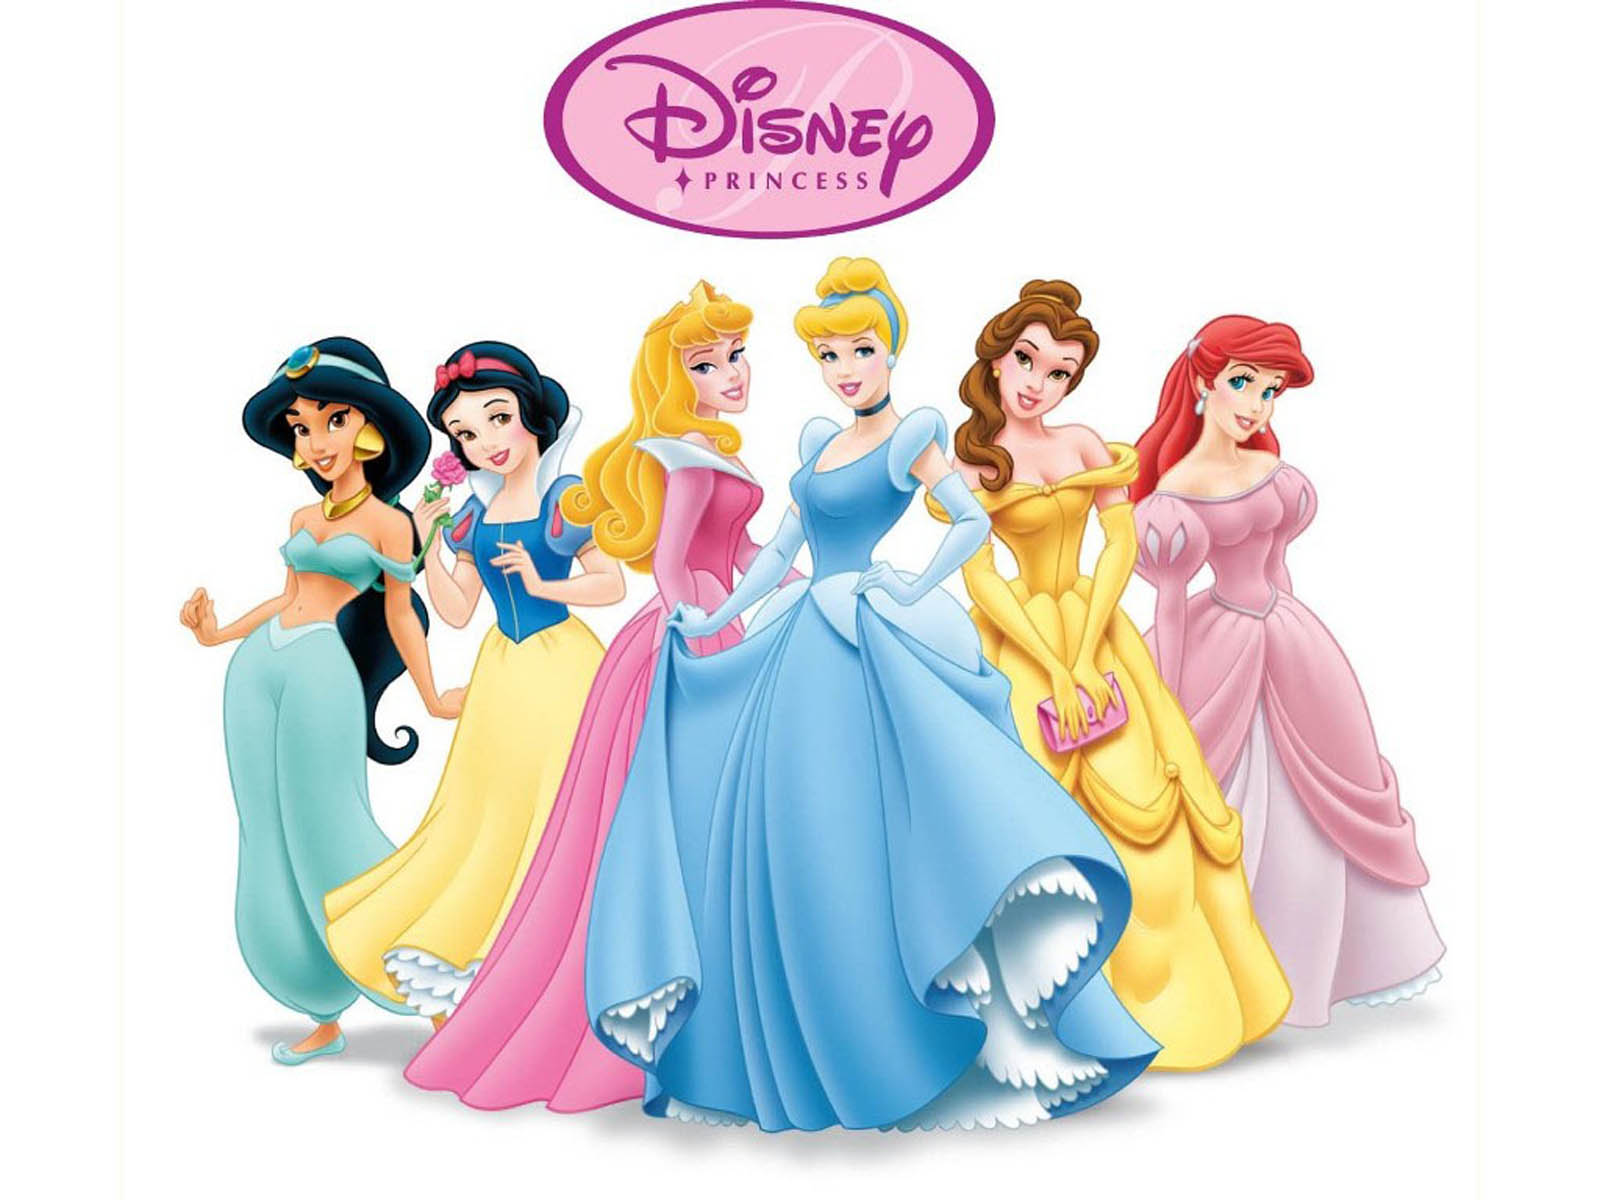 Disney Princess Wallpapers 01